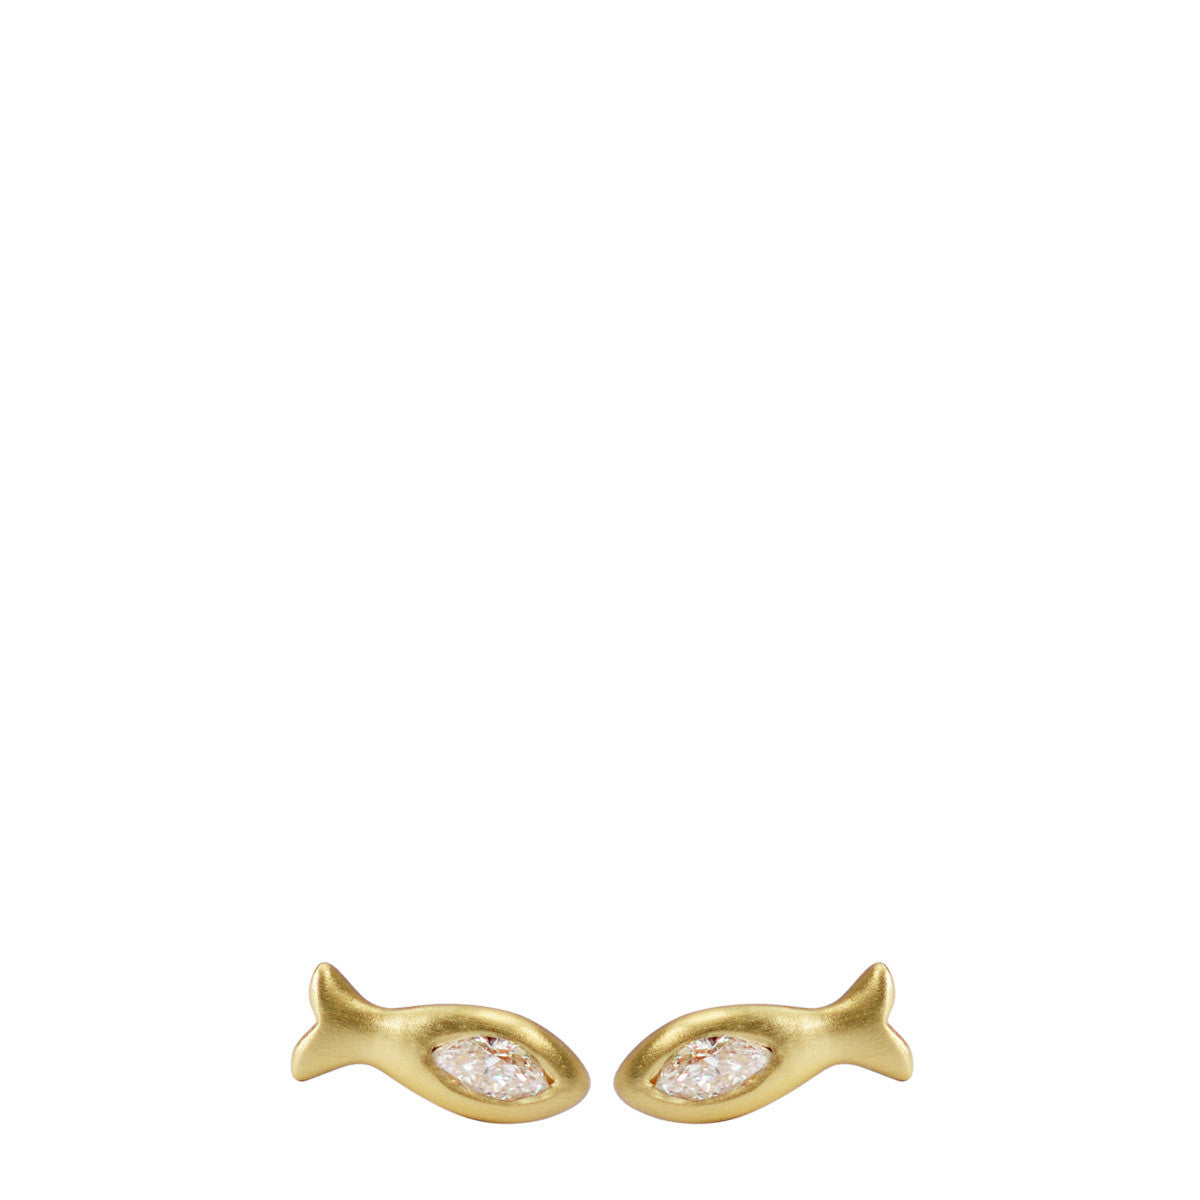 18K Gold Fish Stud Earrings with Marquise Diamonds